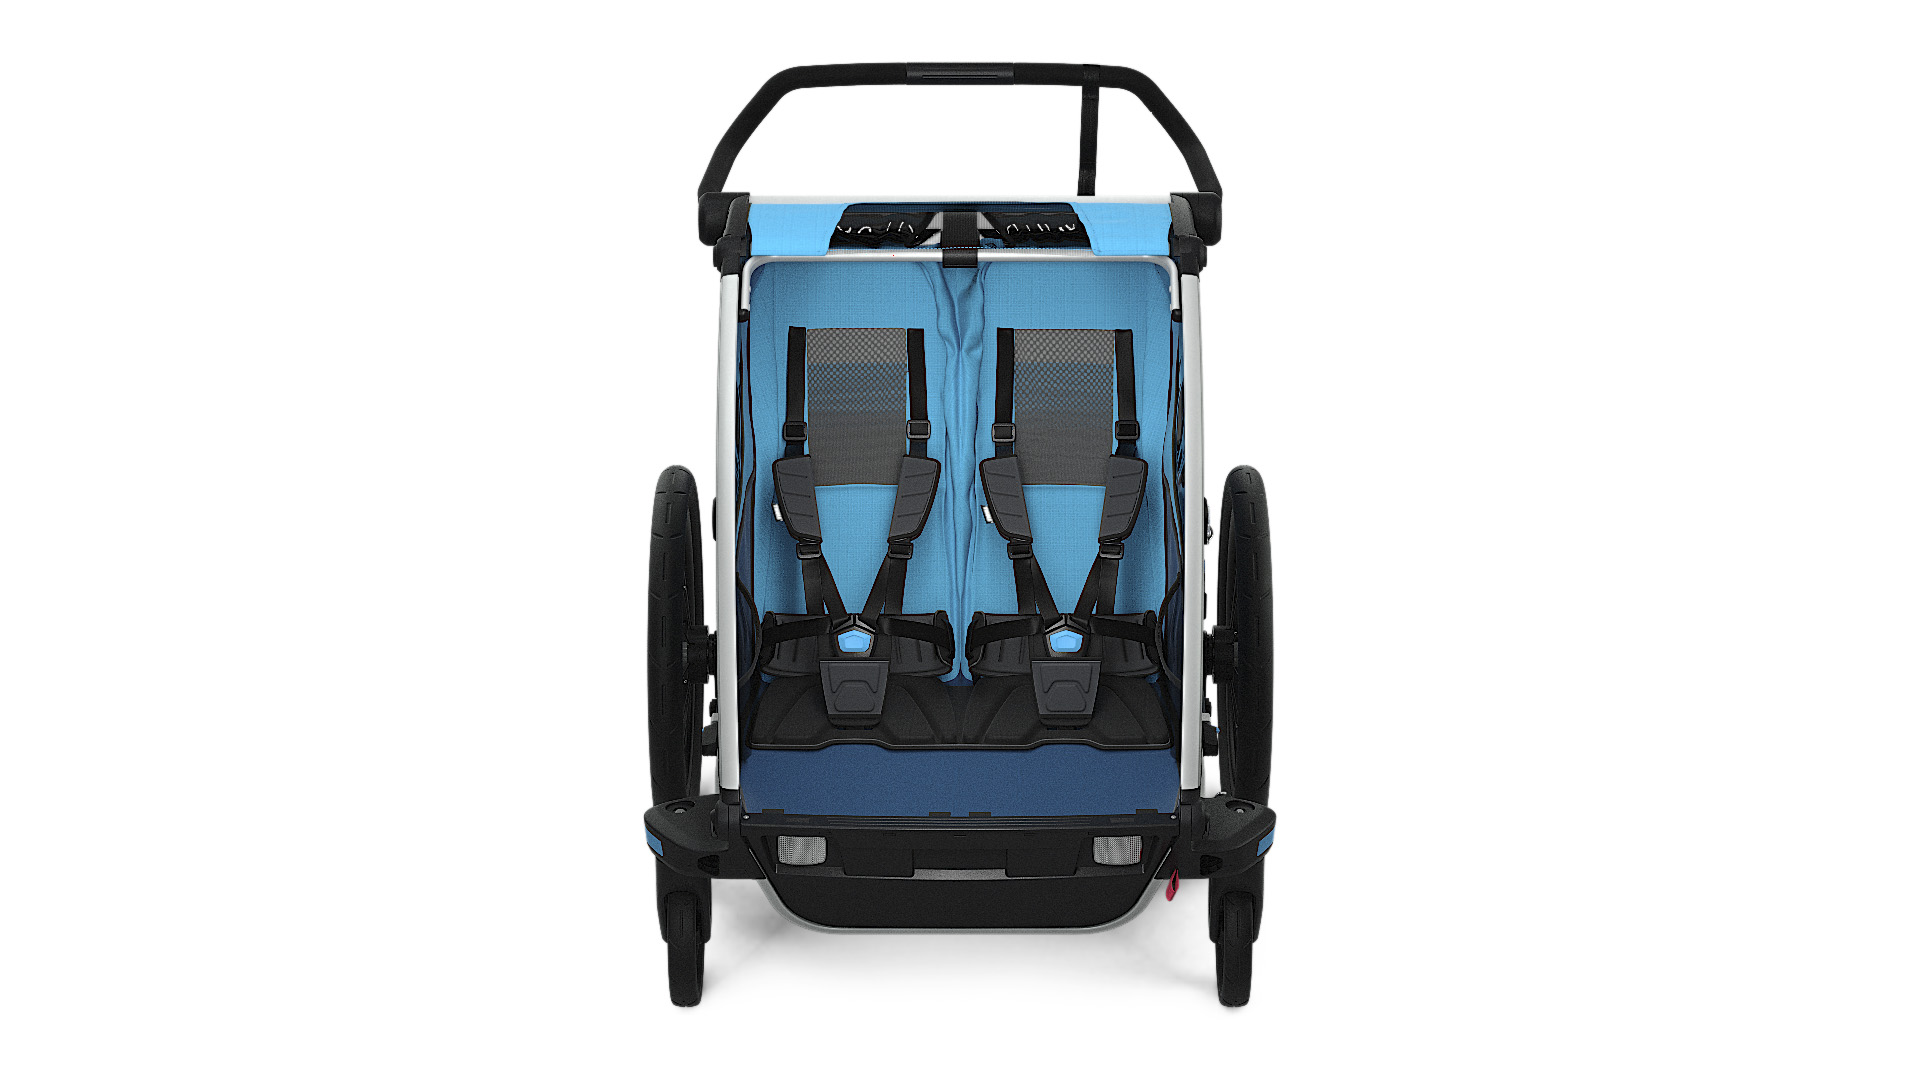 Thule_Chariot_Cross2_ThuleBlue_Strolling_FRONT_10202003